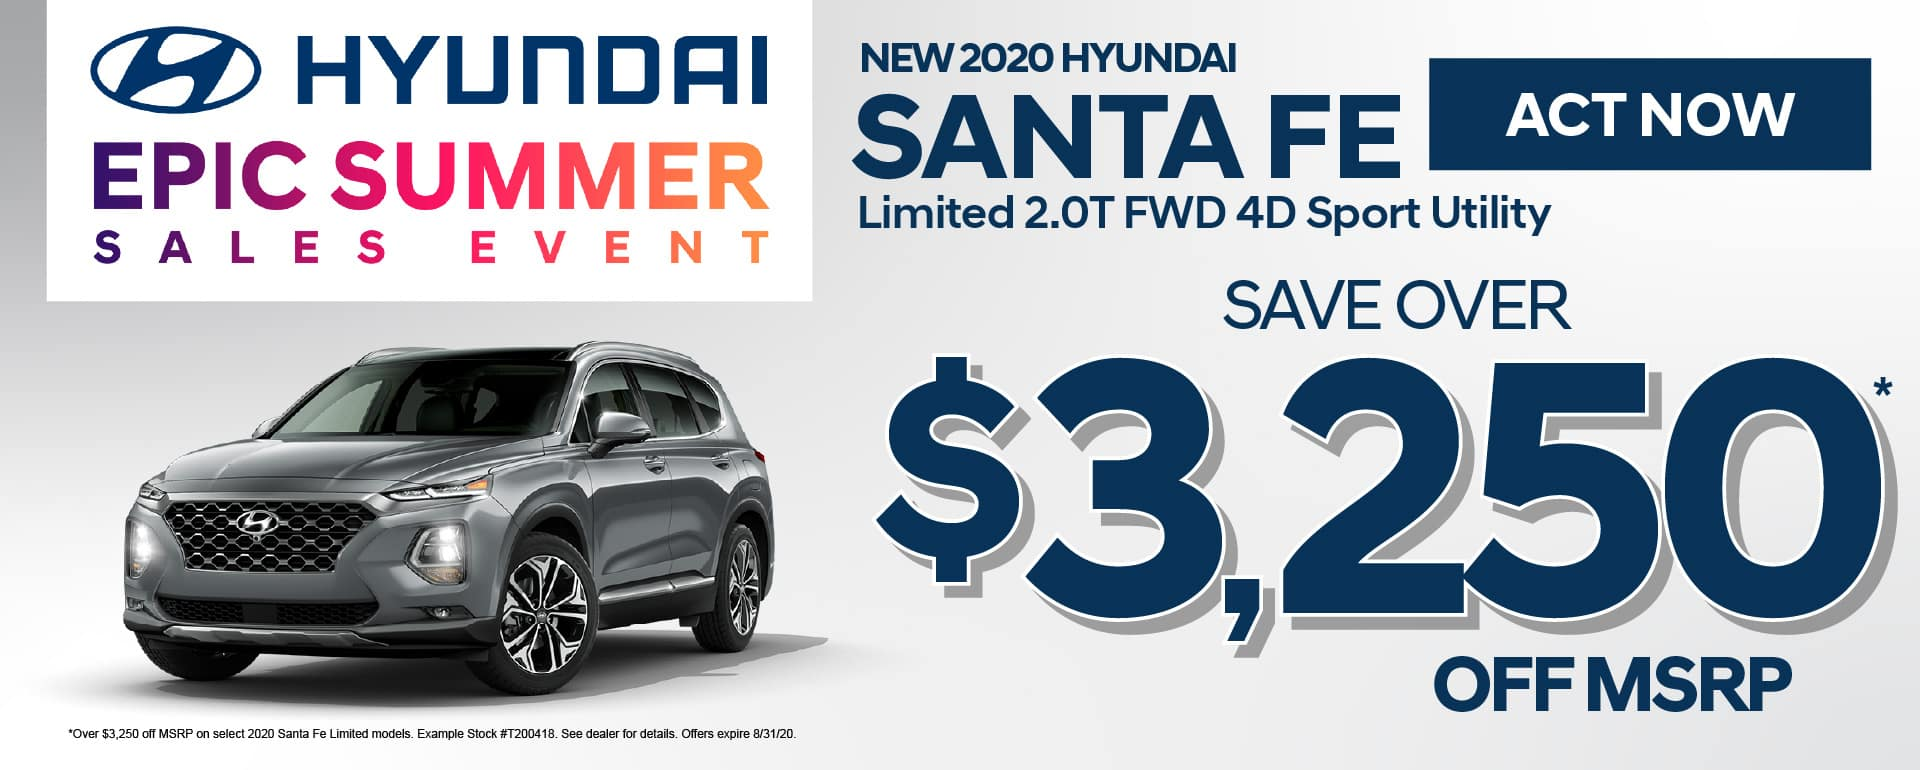 New 2020 Santa Fe Save Over $3,250 off MSRP - Click here to view inventory